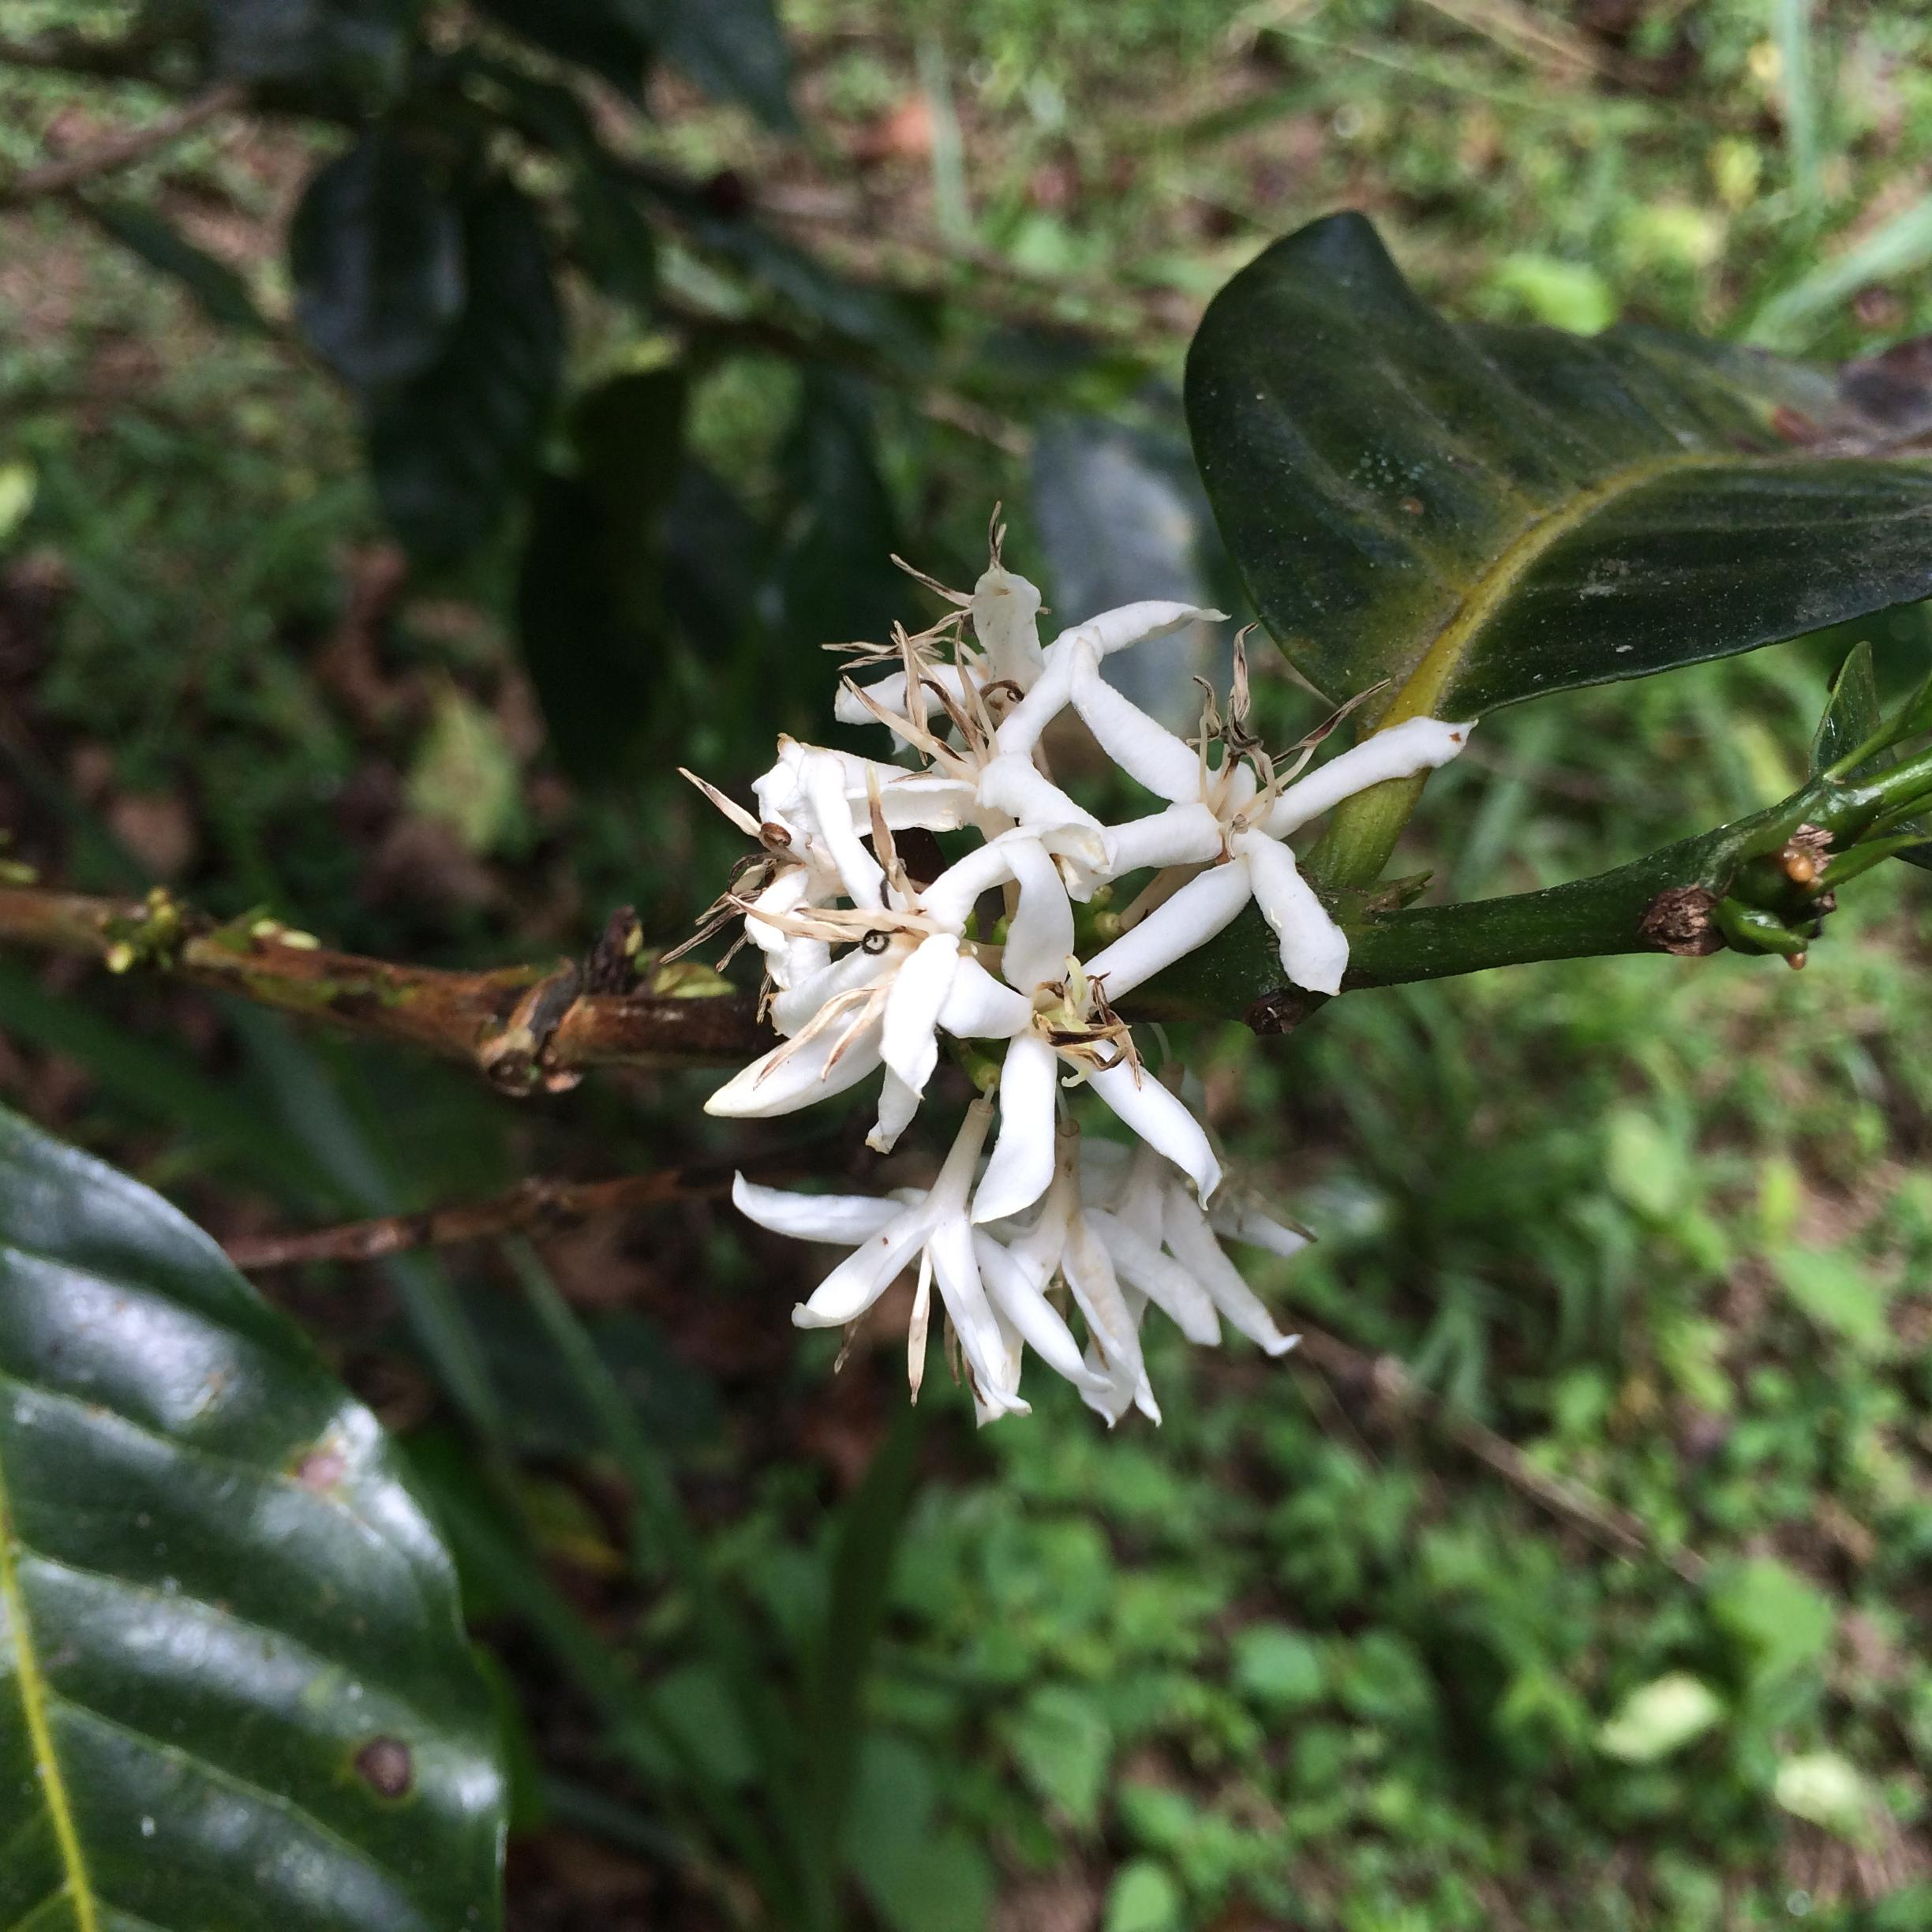 iPhone 039 - Coffee Farming: Ignorance Can Be Bliss